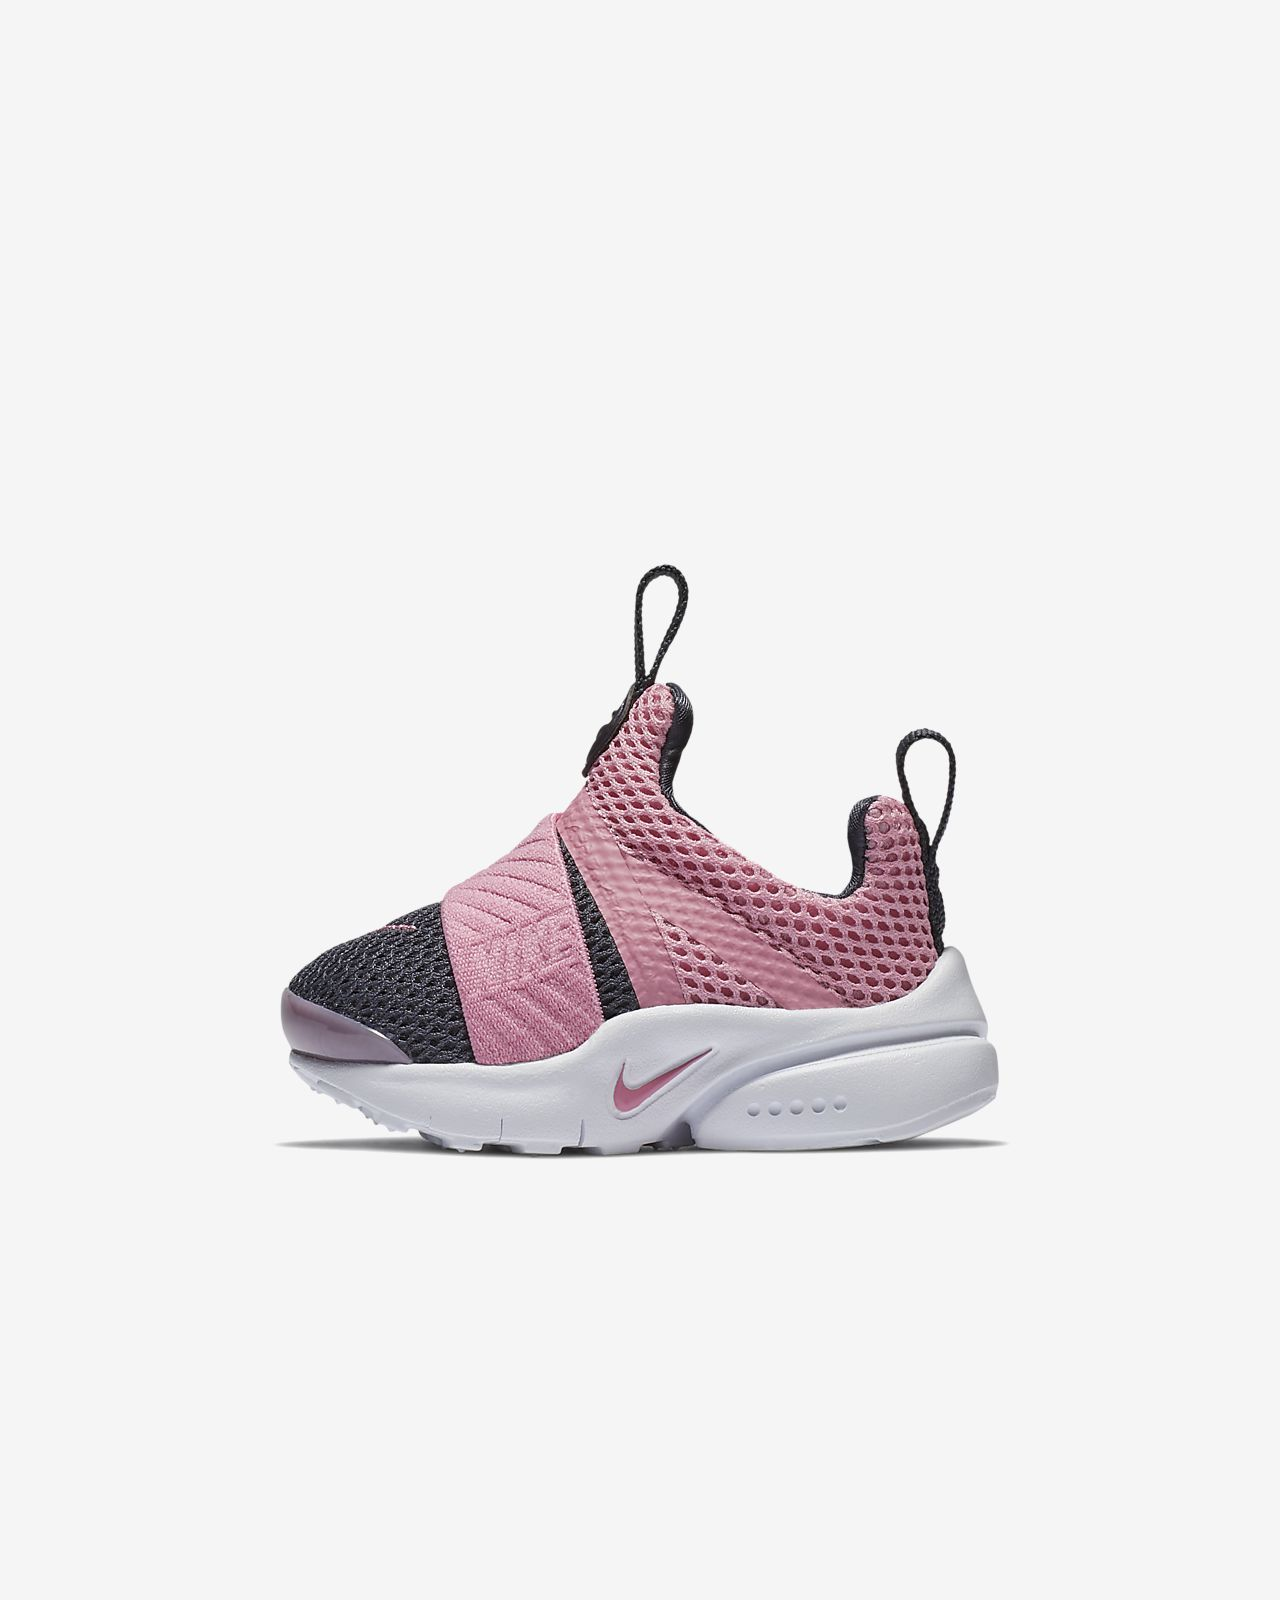 62954e2a4f73 Nike Infant Toddler Shoe Presto Extreme